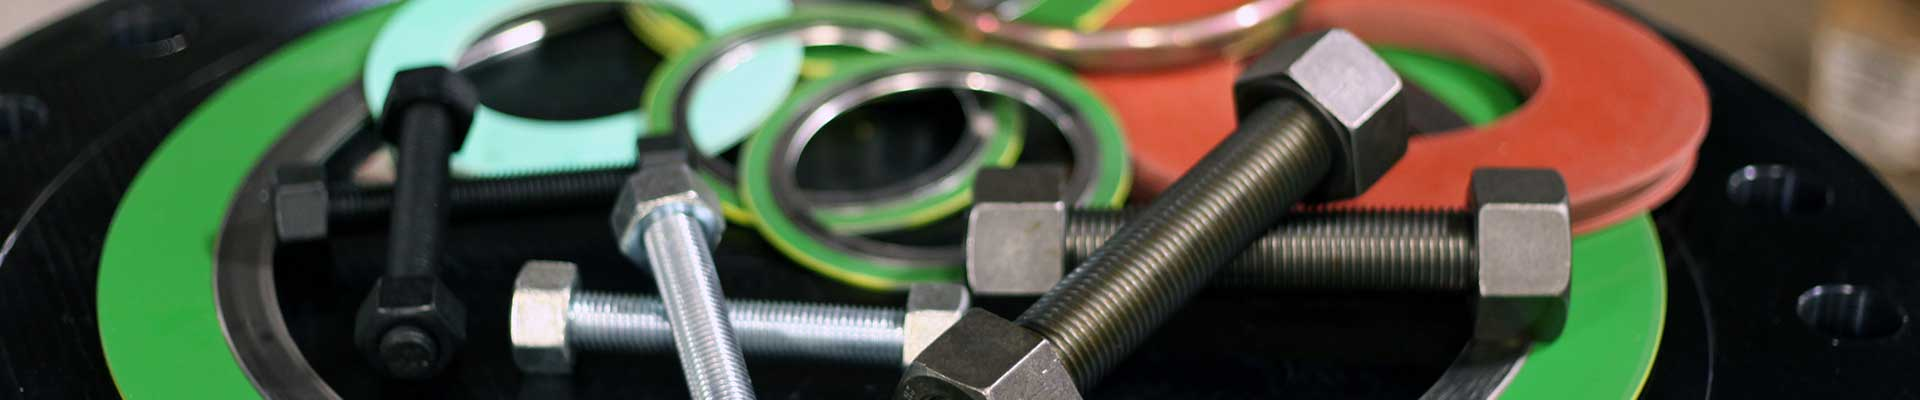 Mattsco Supply Stud Bolts and Gaskets